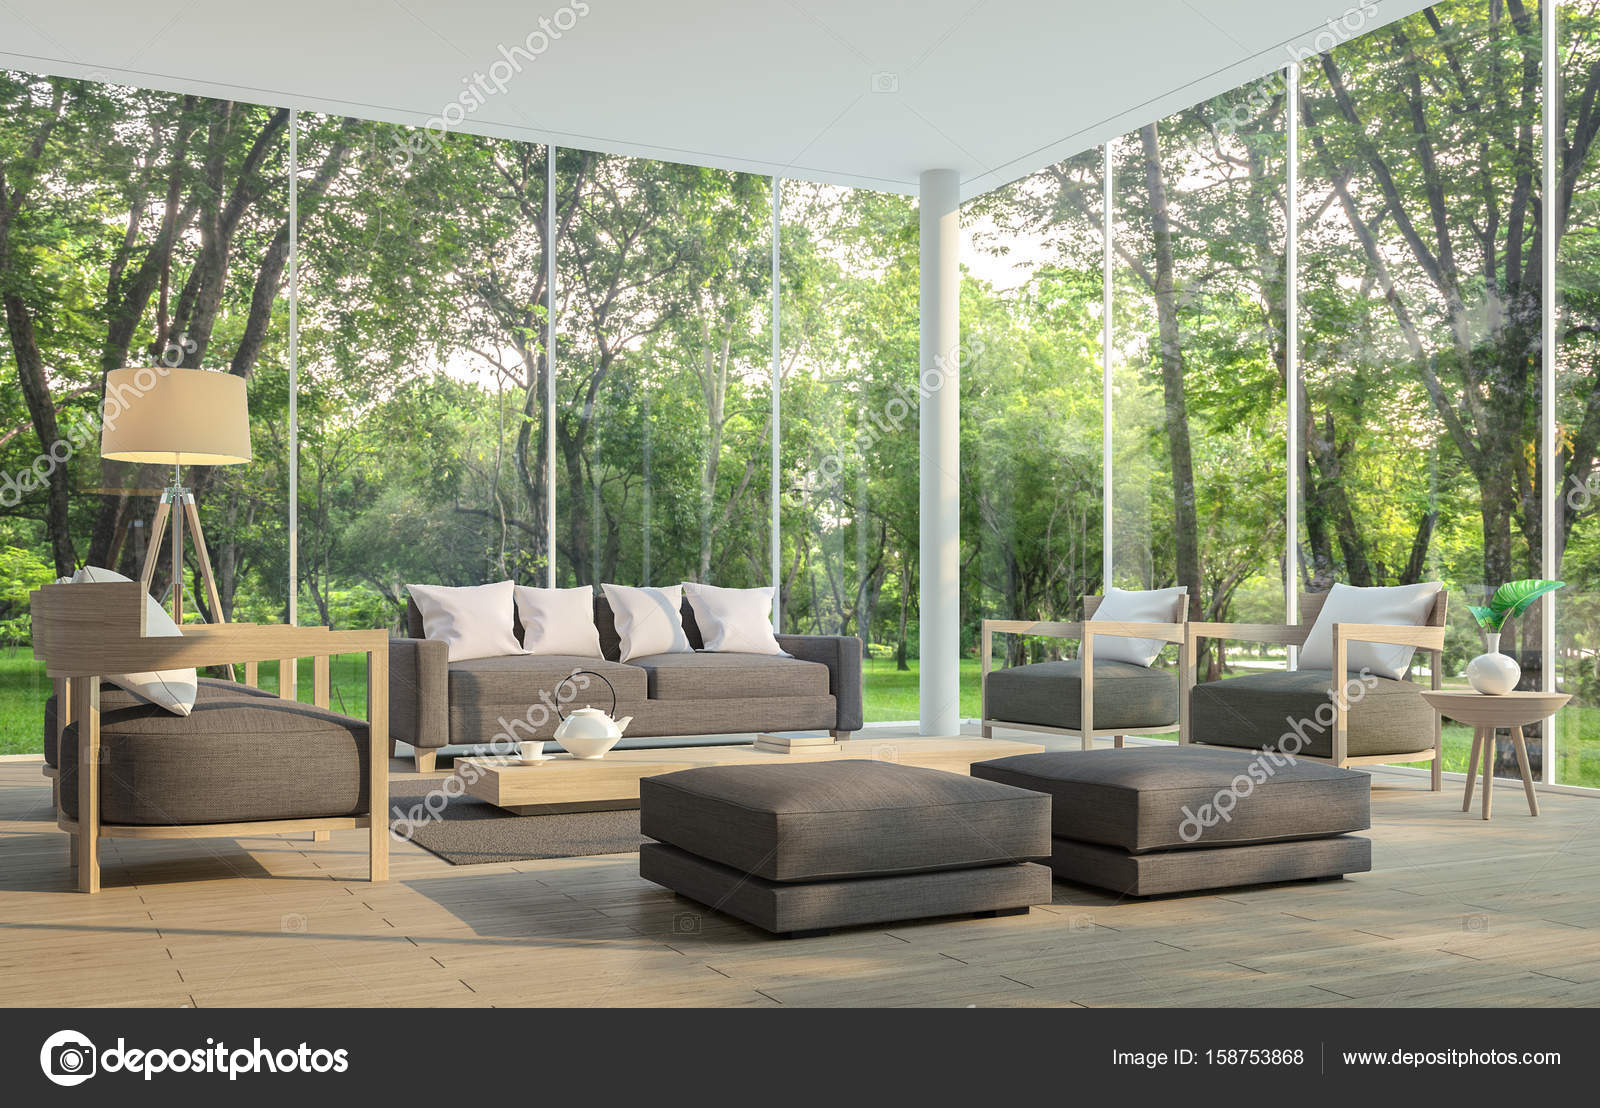 Modern living room with garden view 3d rendering Image Stock Photo